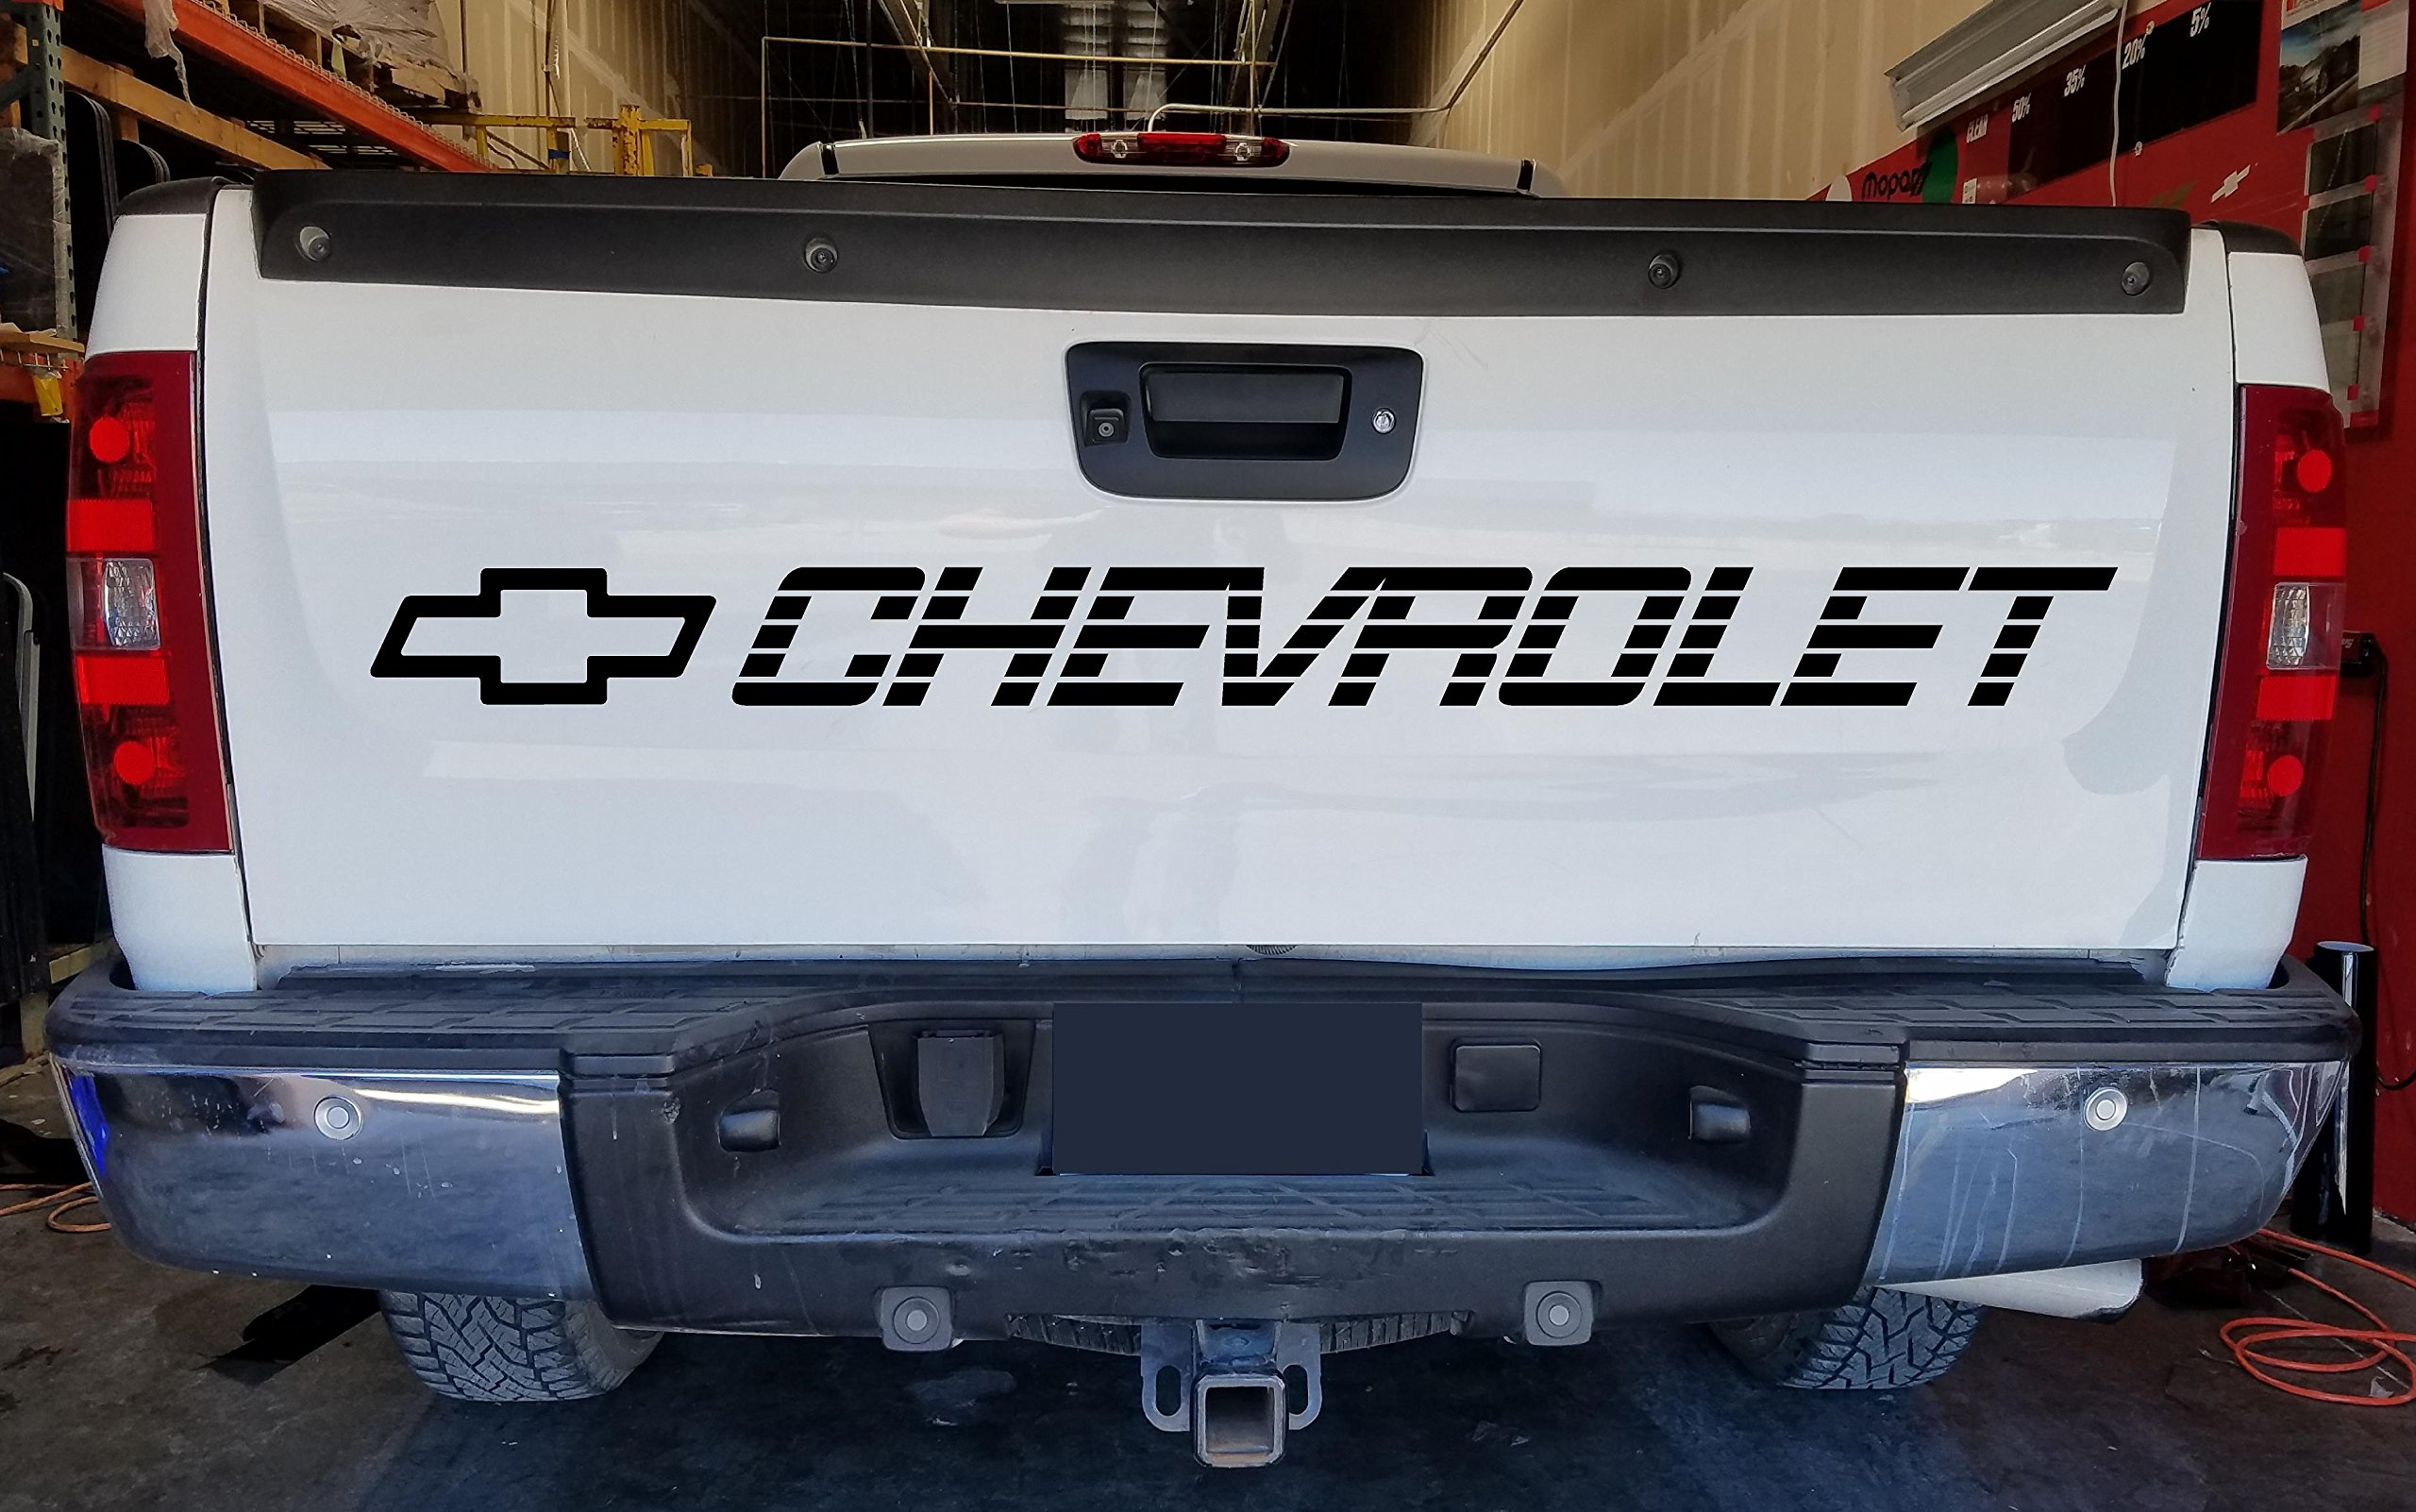 Cheap Chevrolet Tailgate Decal Find Chevrolet Tailgate Decal Deals On Line At Alibaba Com